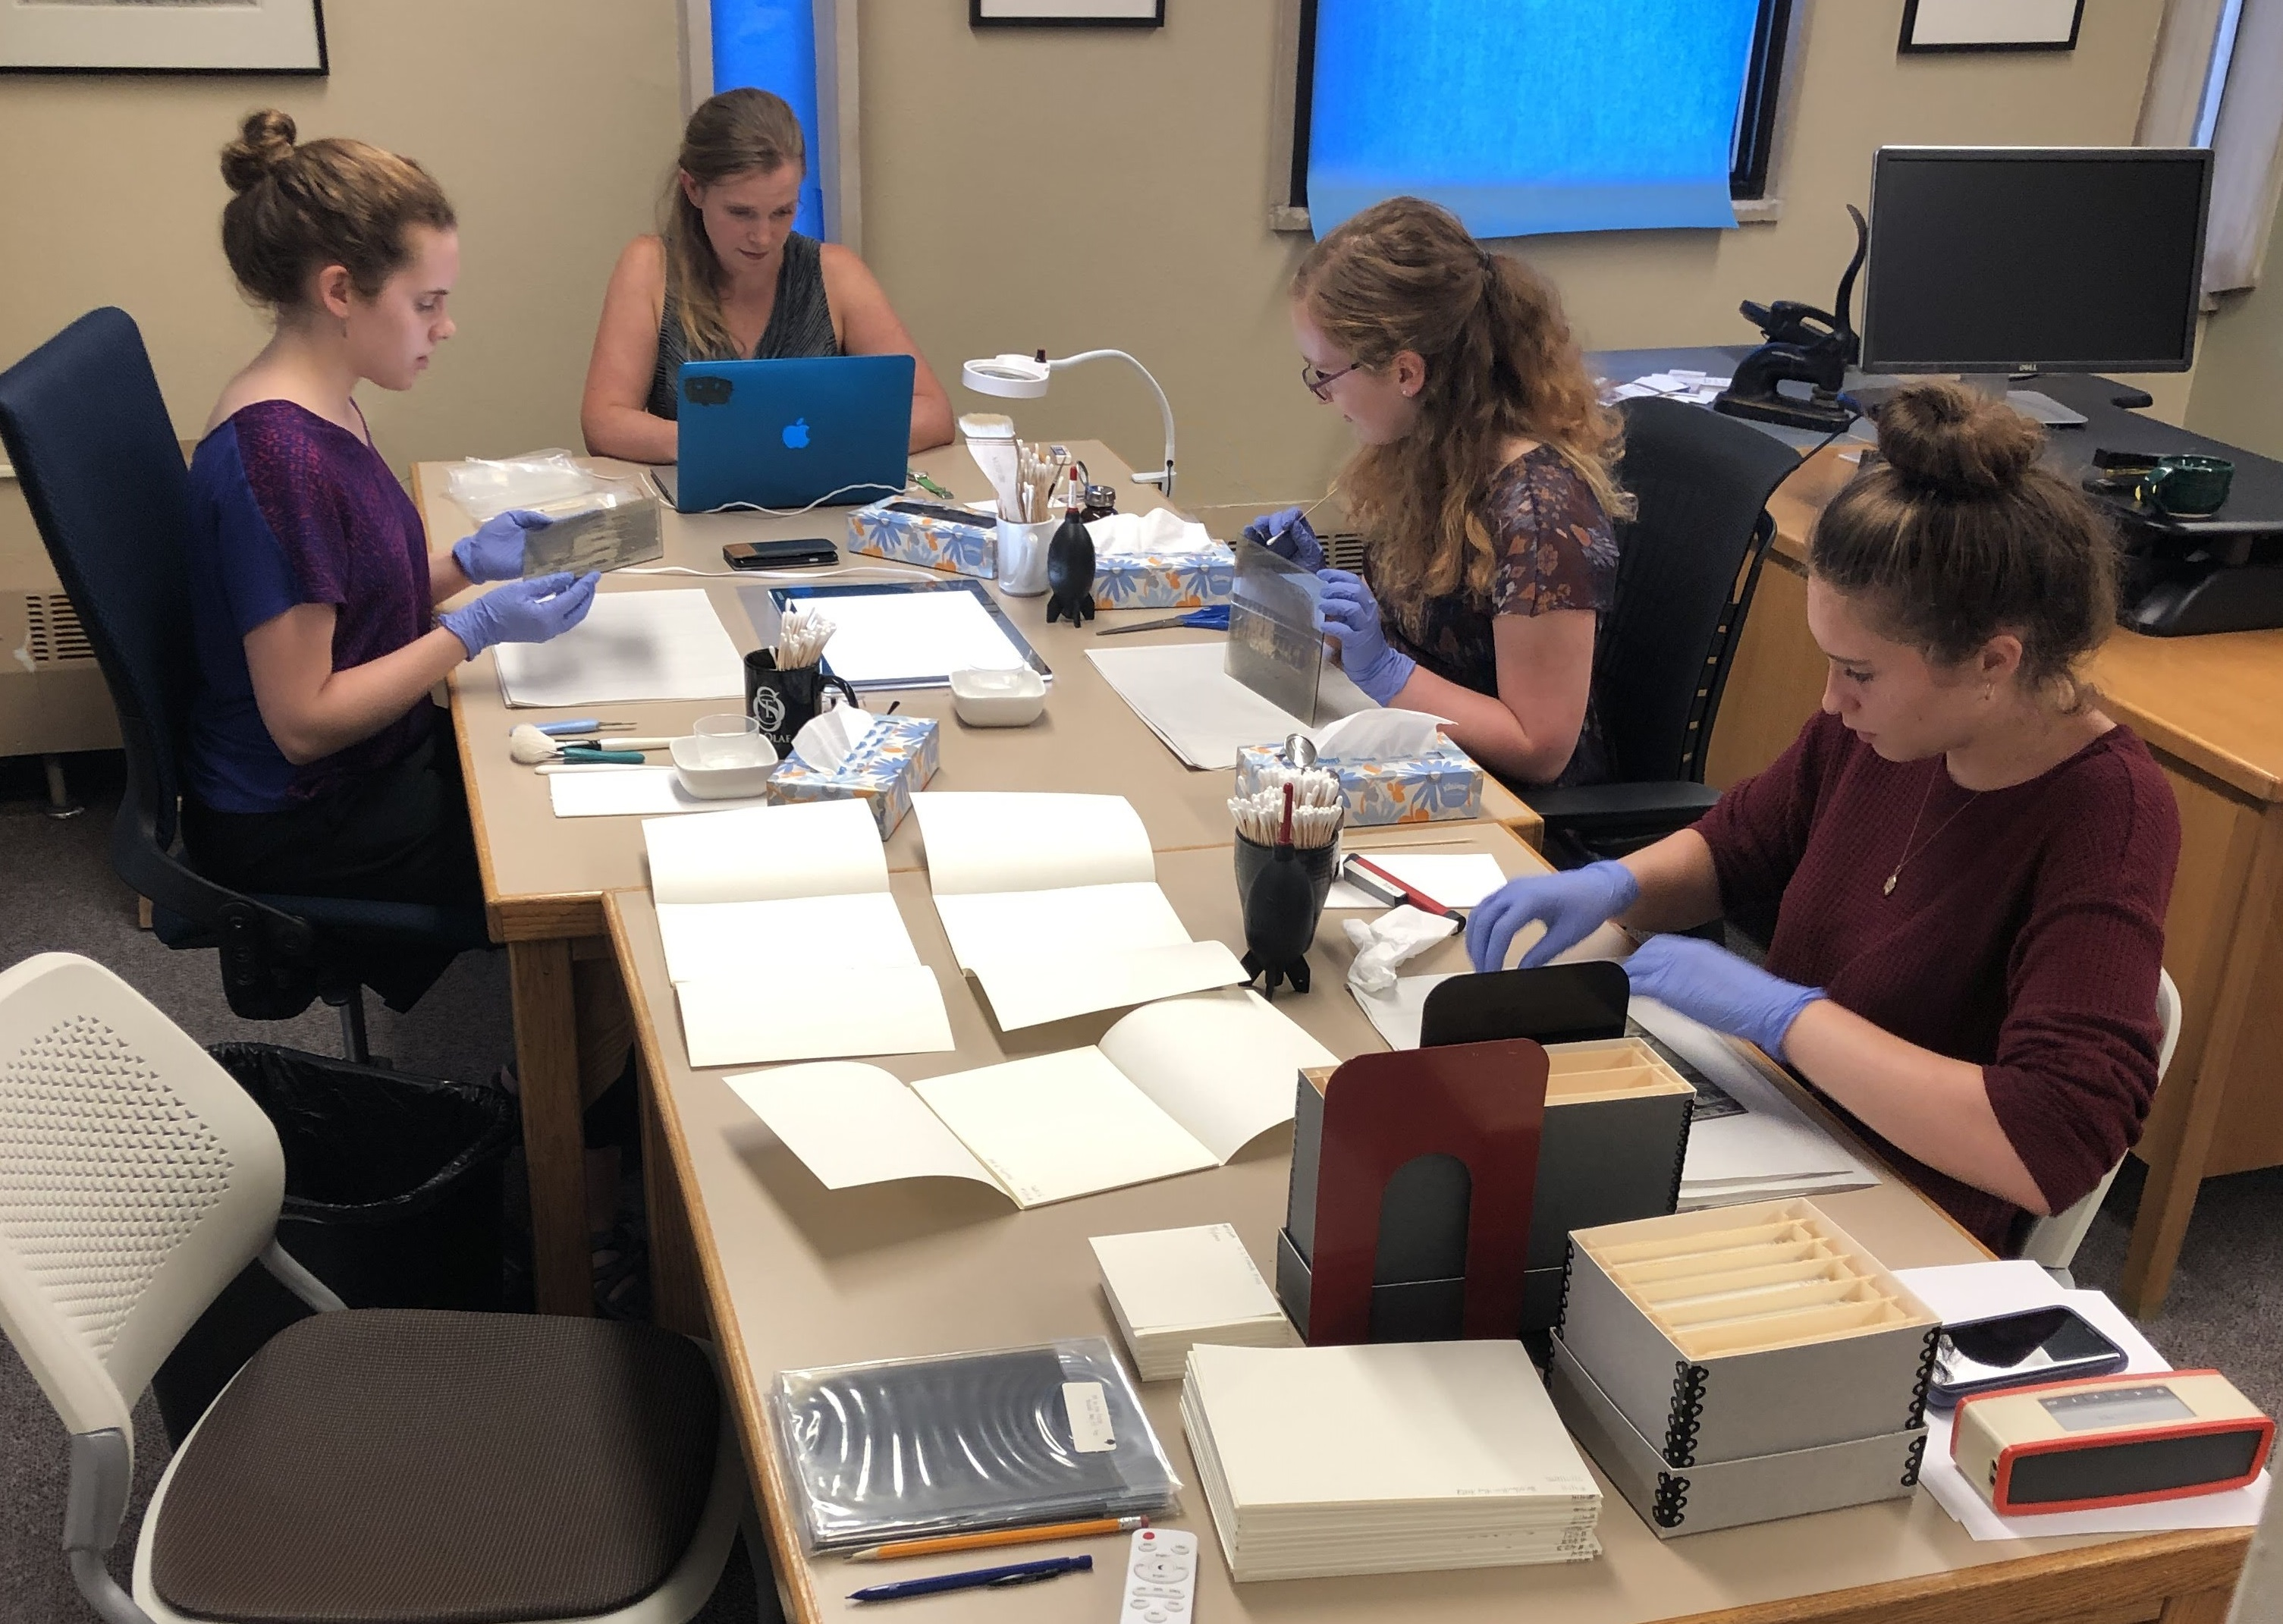 CCAHA staff and St. Olaf College library staff working together on glas plate negative treatment during a 2018 site visit.